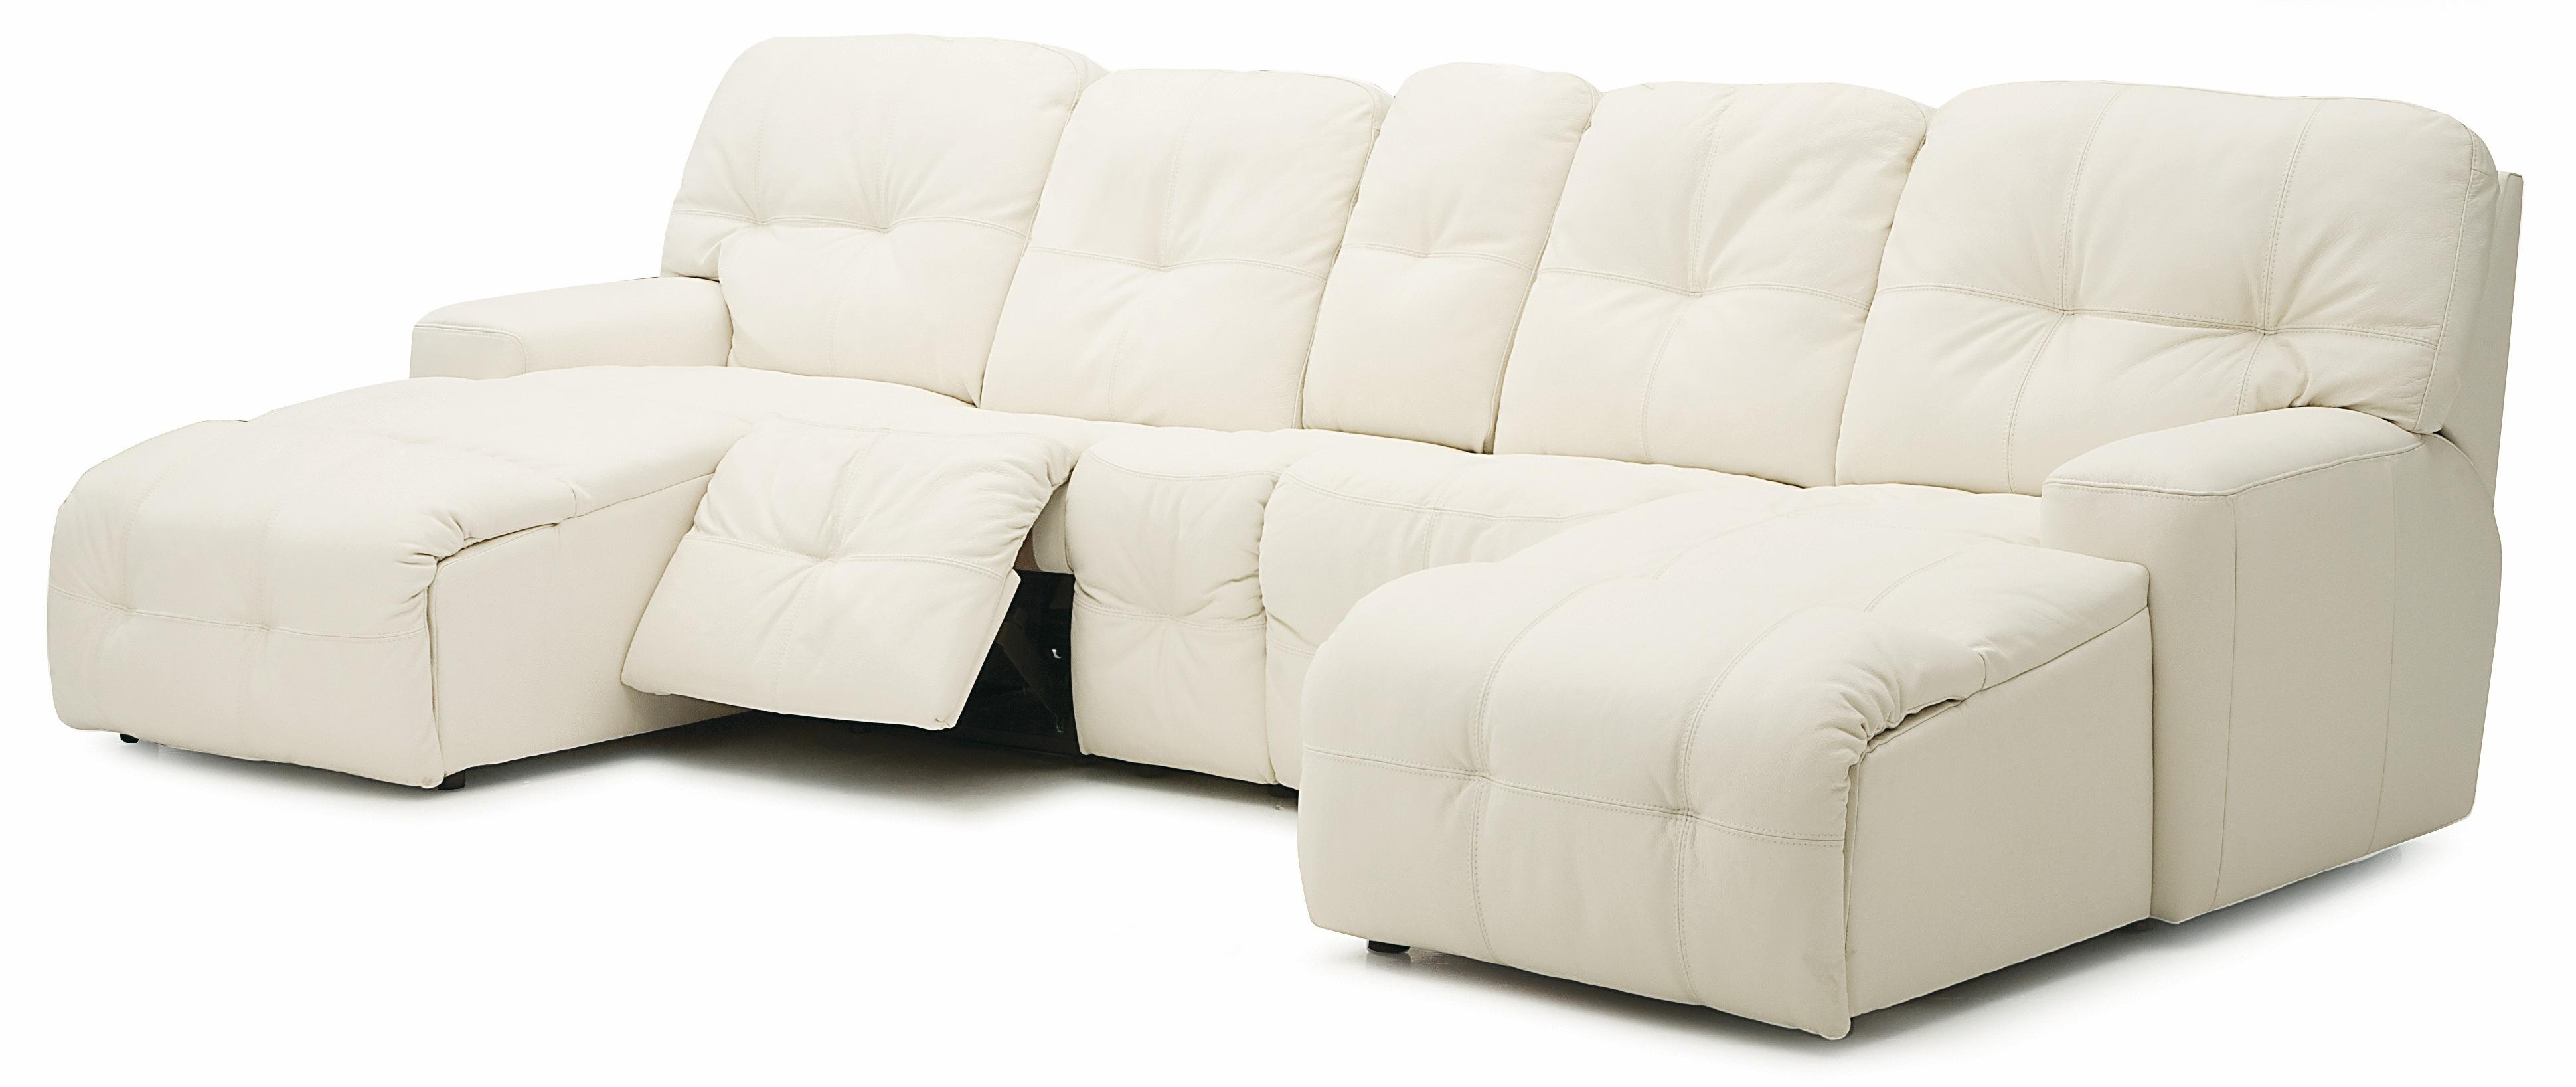 Palliser Mystique Transitional Power Reclining Sectional With Left With Sectional Sofas At Buffalo Ny (View 11 of 15)